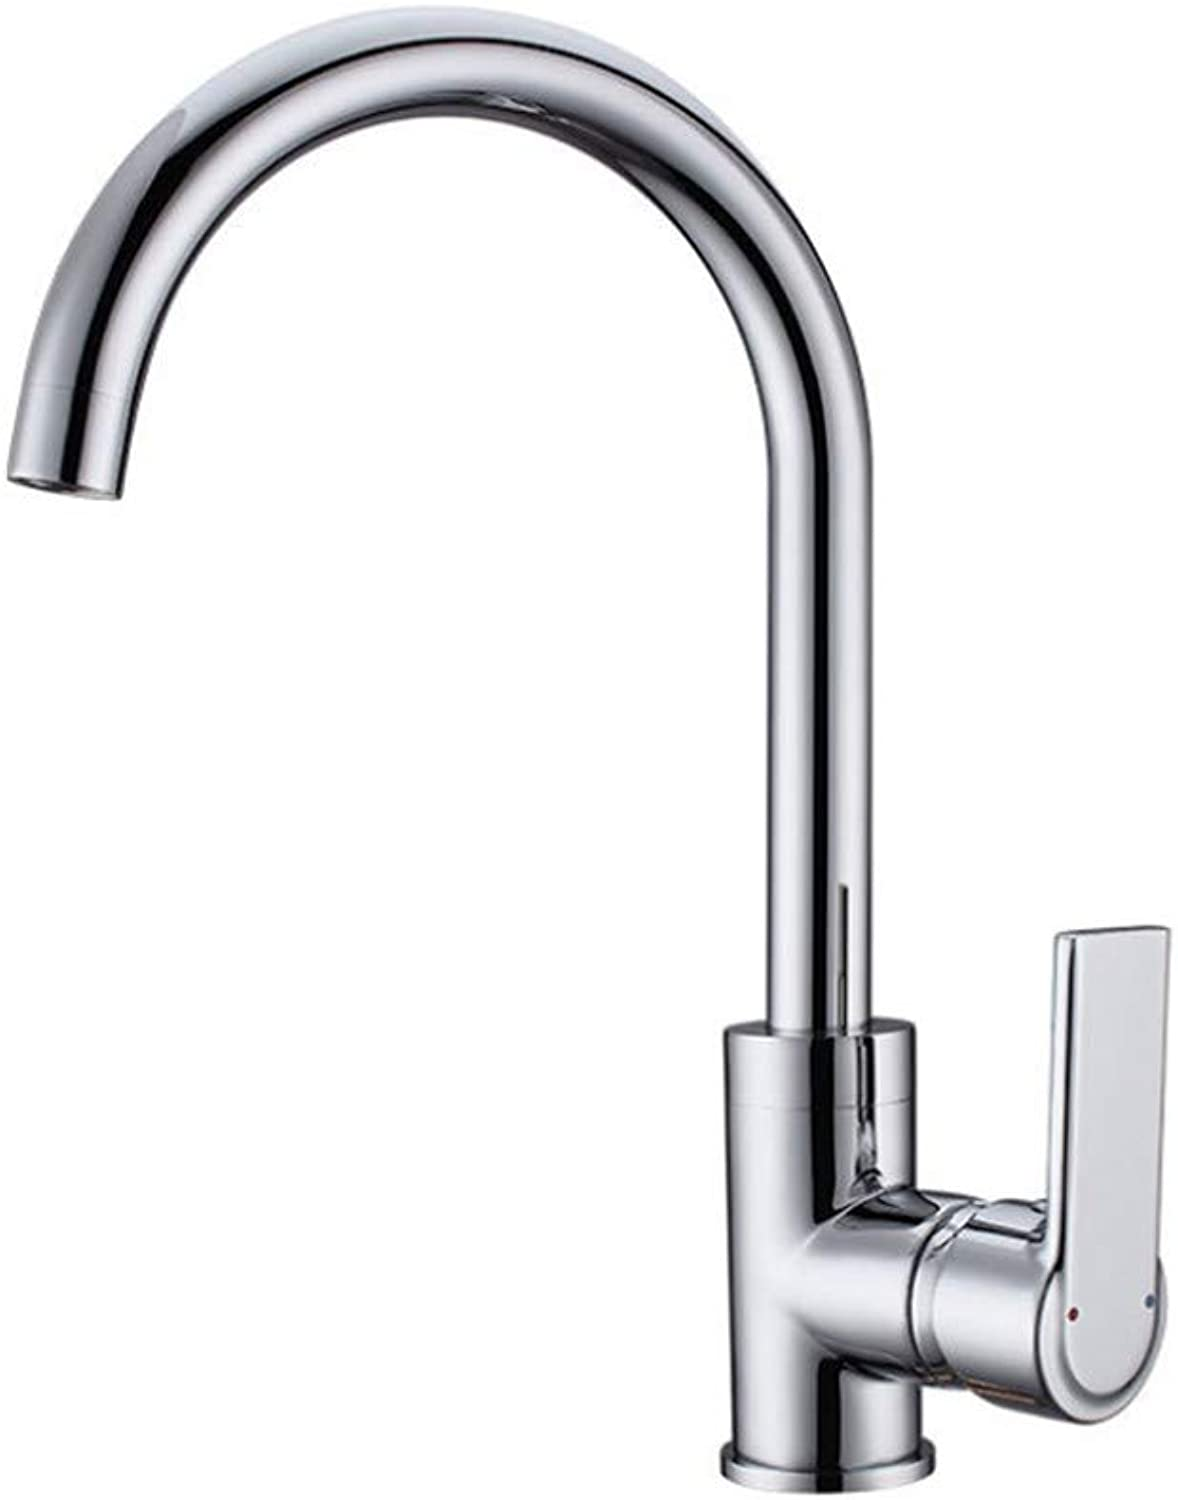 Kitchen Sink Taps Bathroom Taps Copper Plated Chromium Cold and Hot Kitchen Sink Faucet redary Dishwasher Basin Faucet